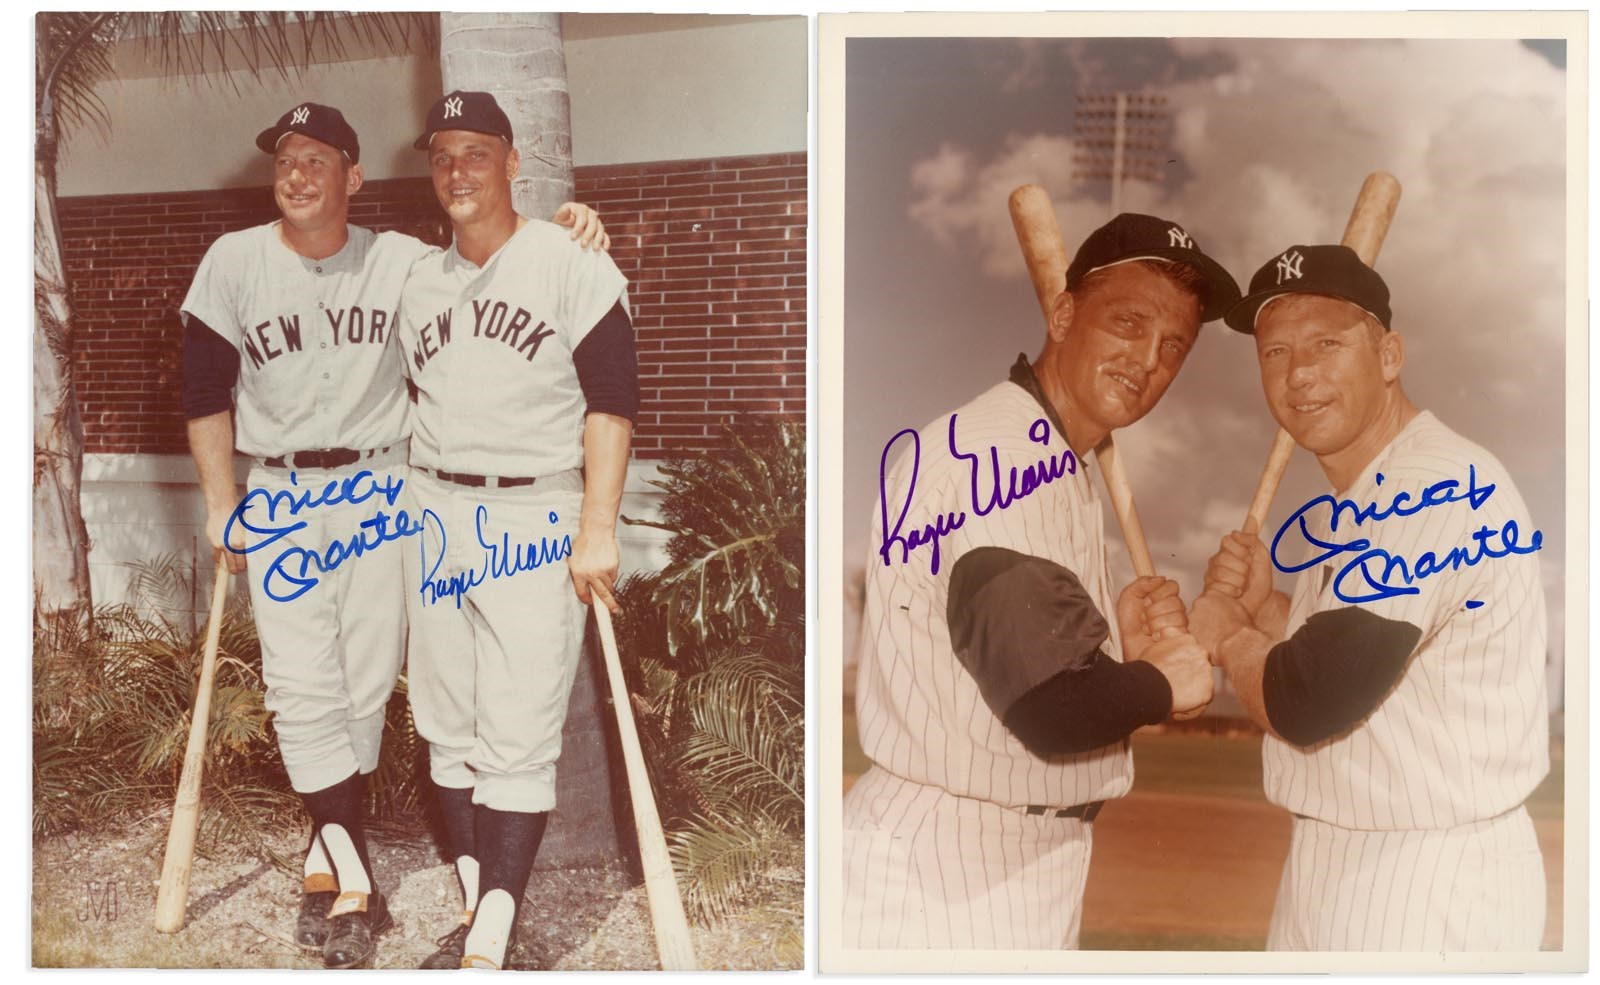 Mickey Mantle & Roger Maris Dual-Signed Photographs - All PSA Certified (5)